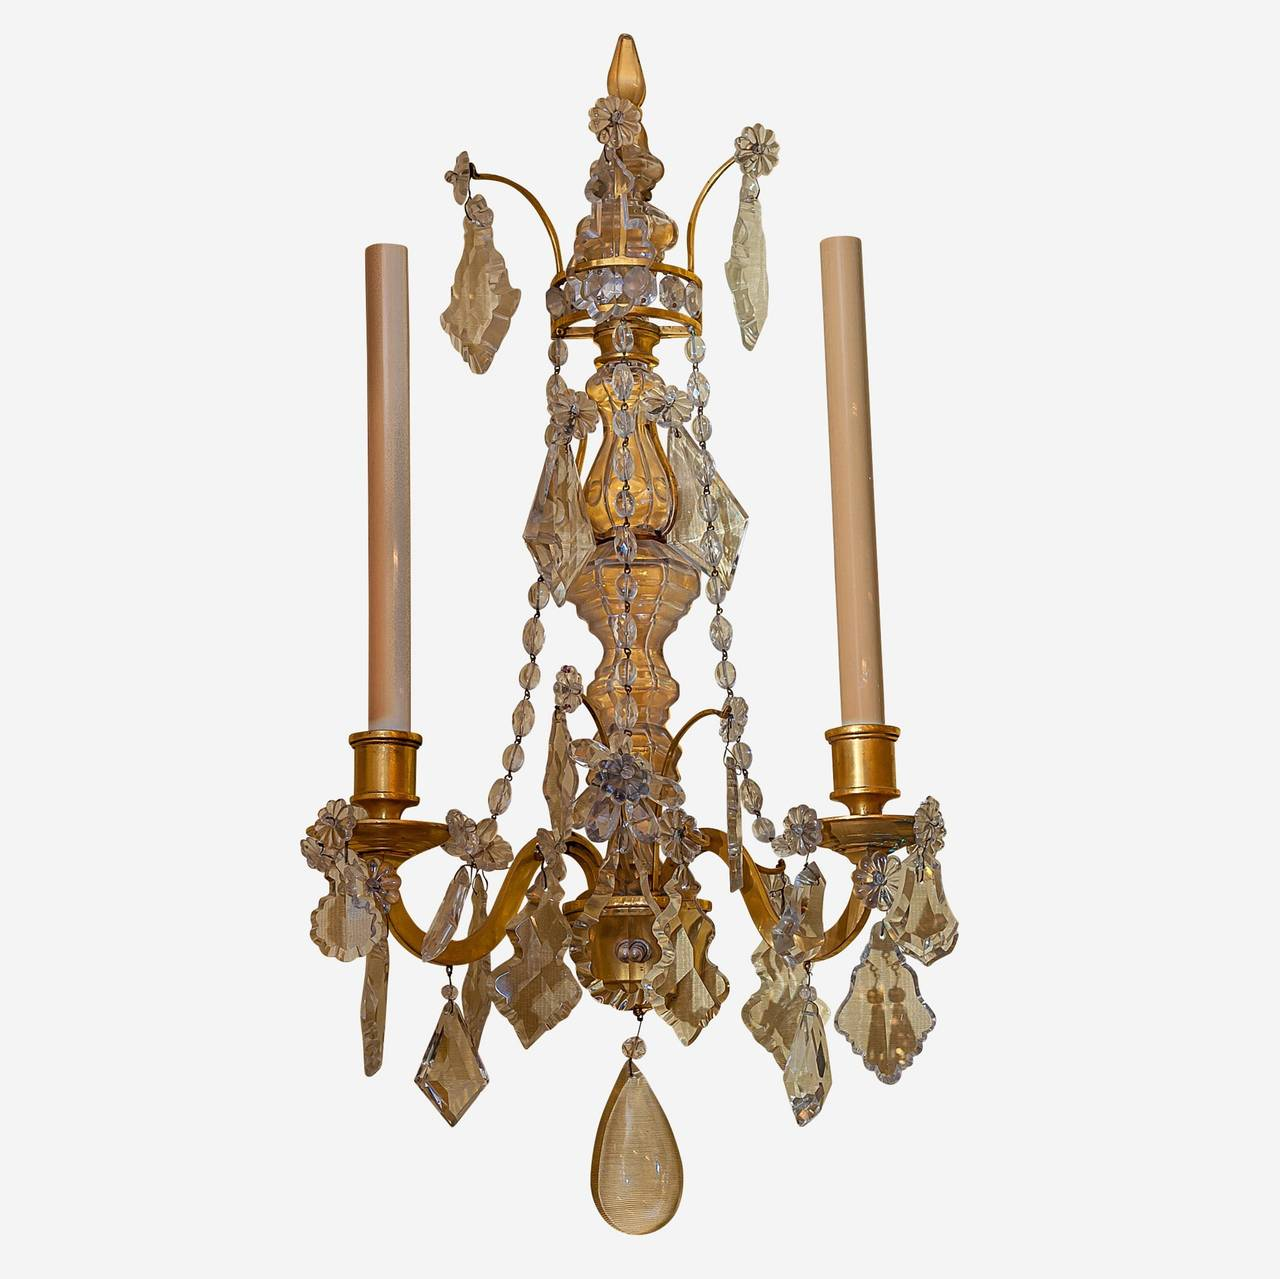 Pair of Two-Arm Crystal and Bronze Wall Light Sconces Attributed to caldwell For Sale at 1stdibs